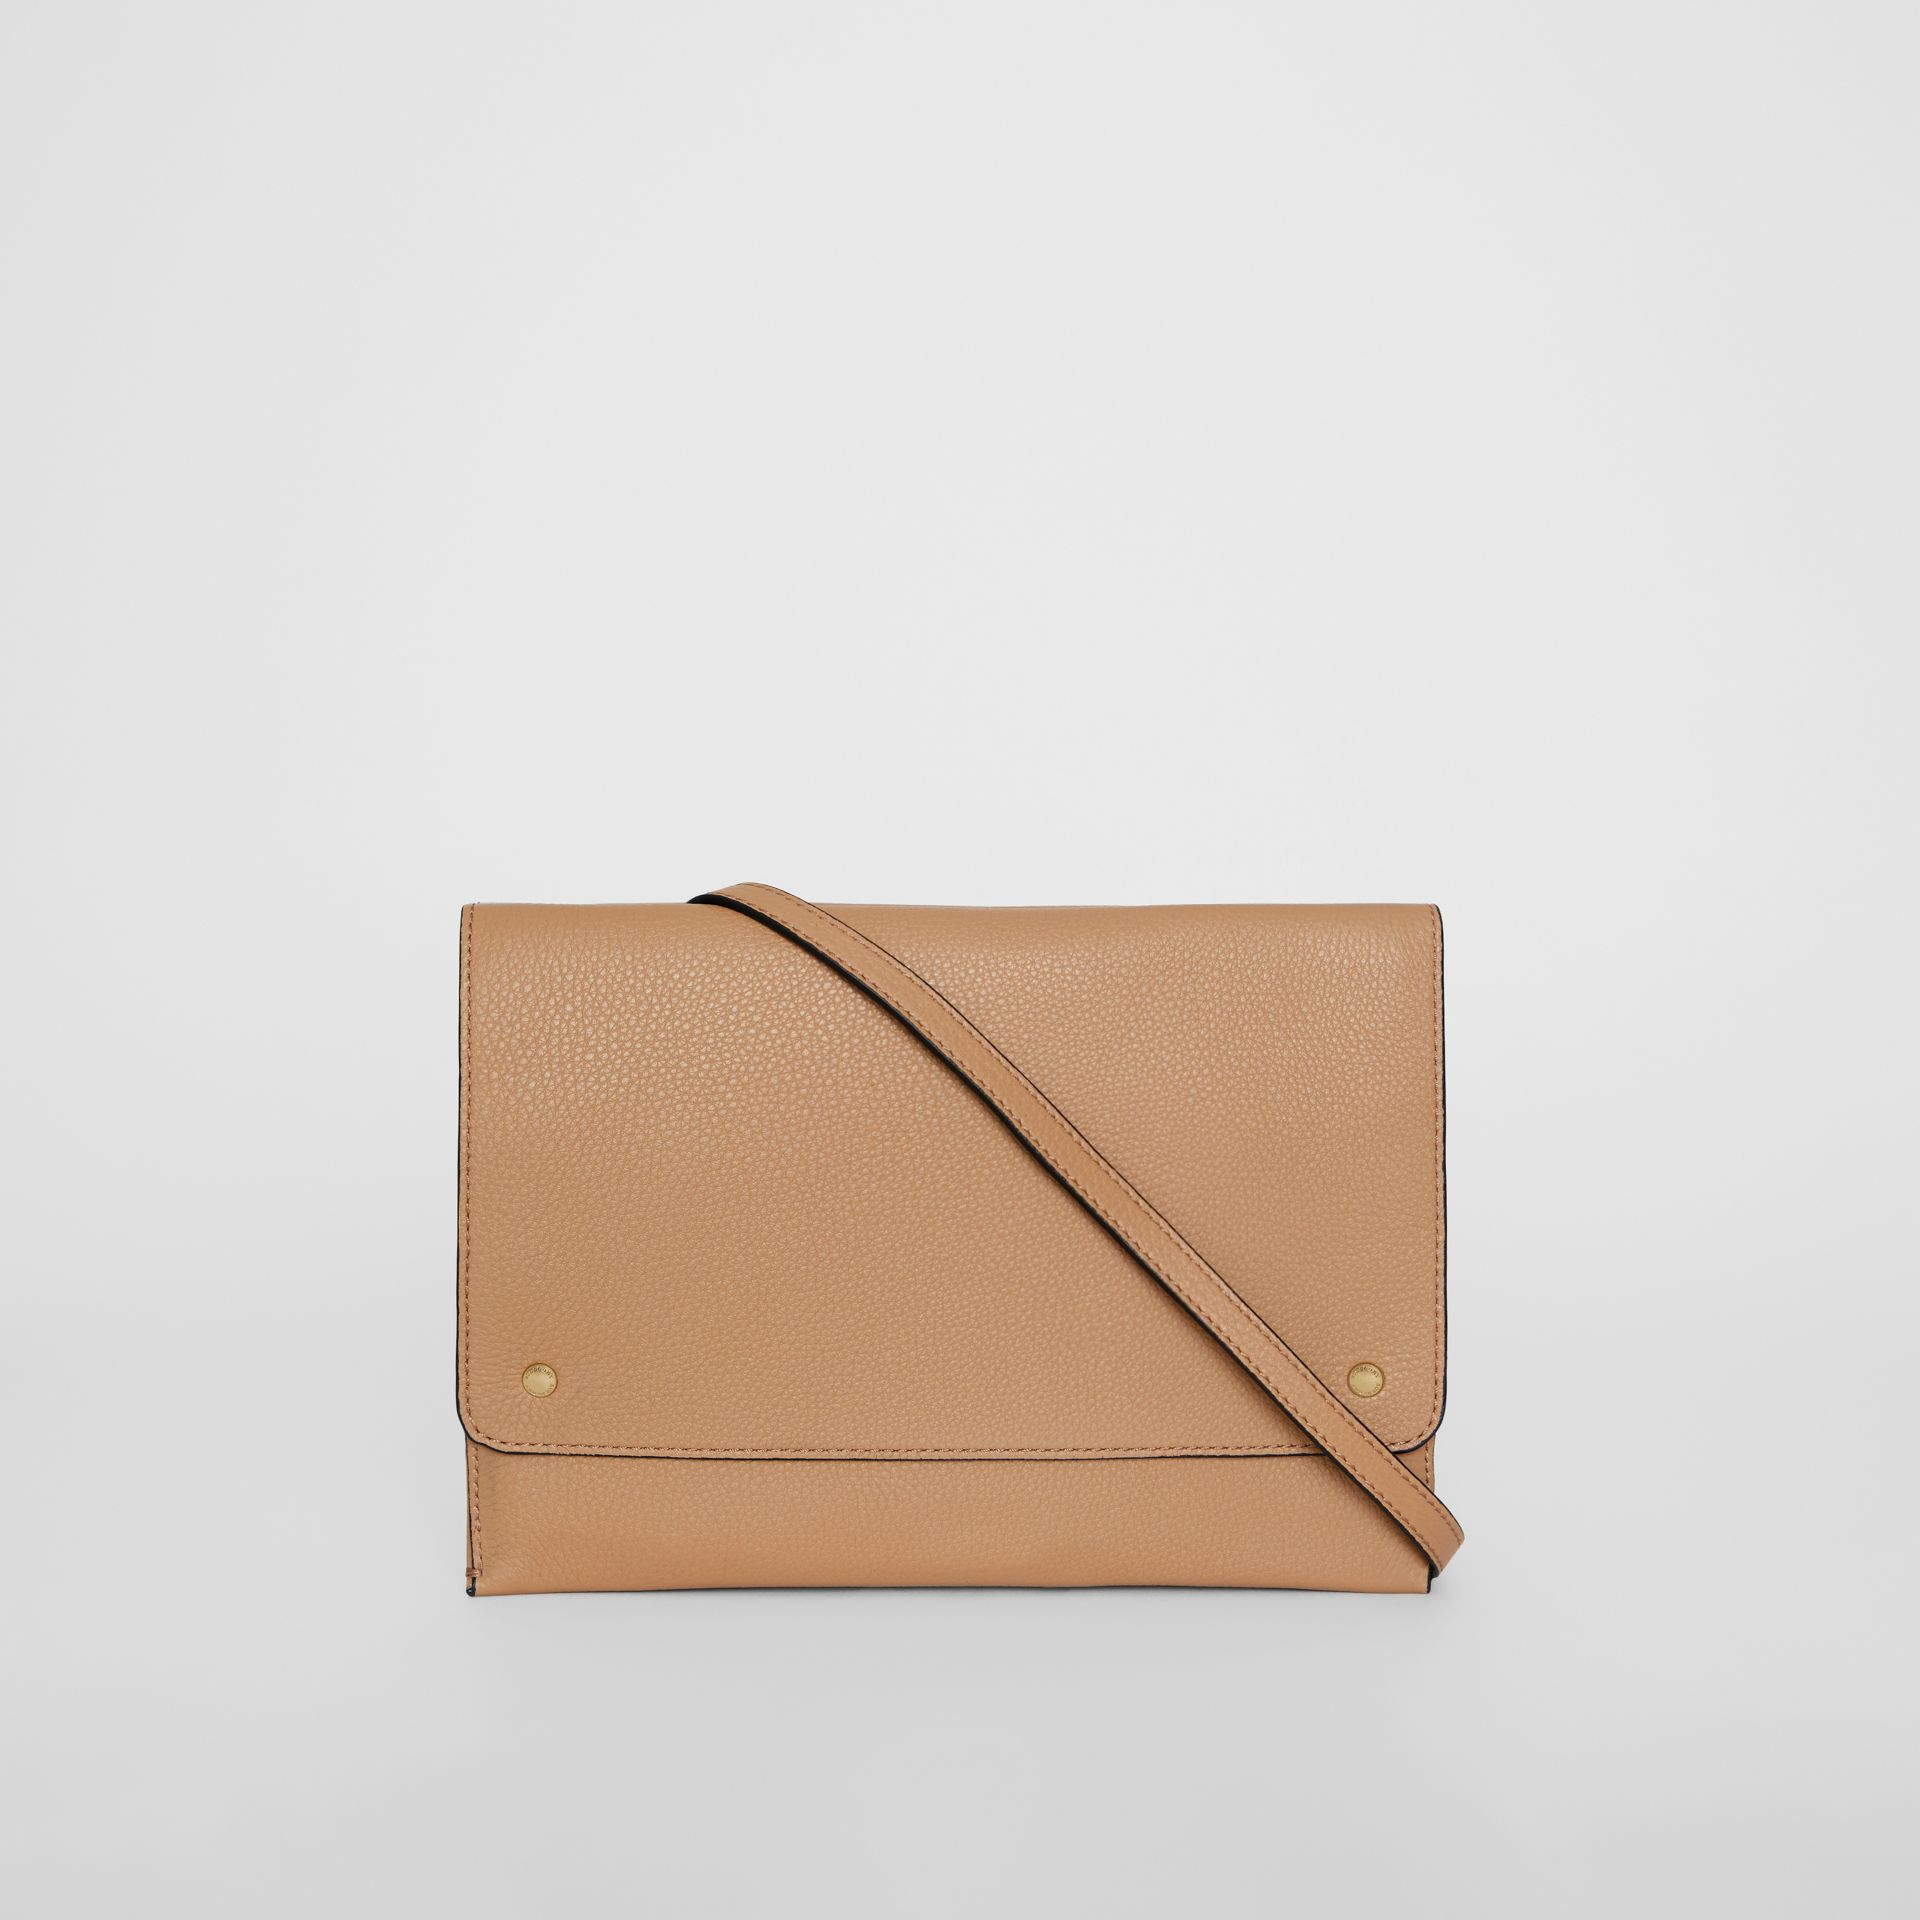 Leather Envelope Crossbody Bag in Light Camel - Women | Burberry - gallery image 7